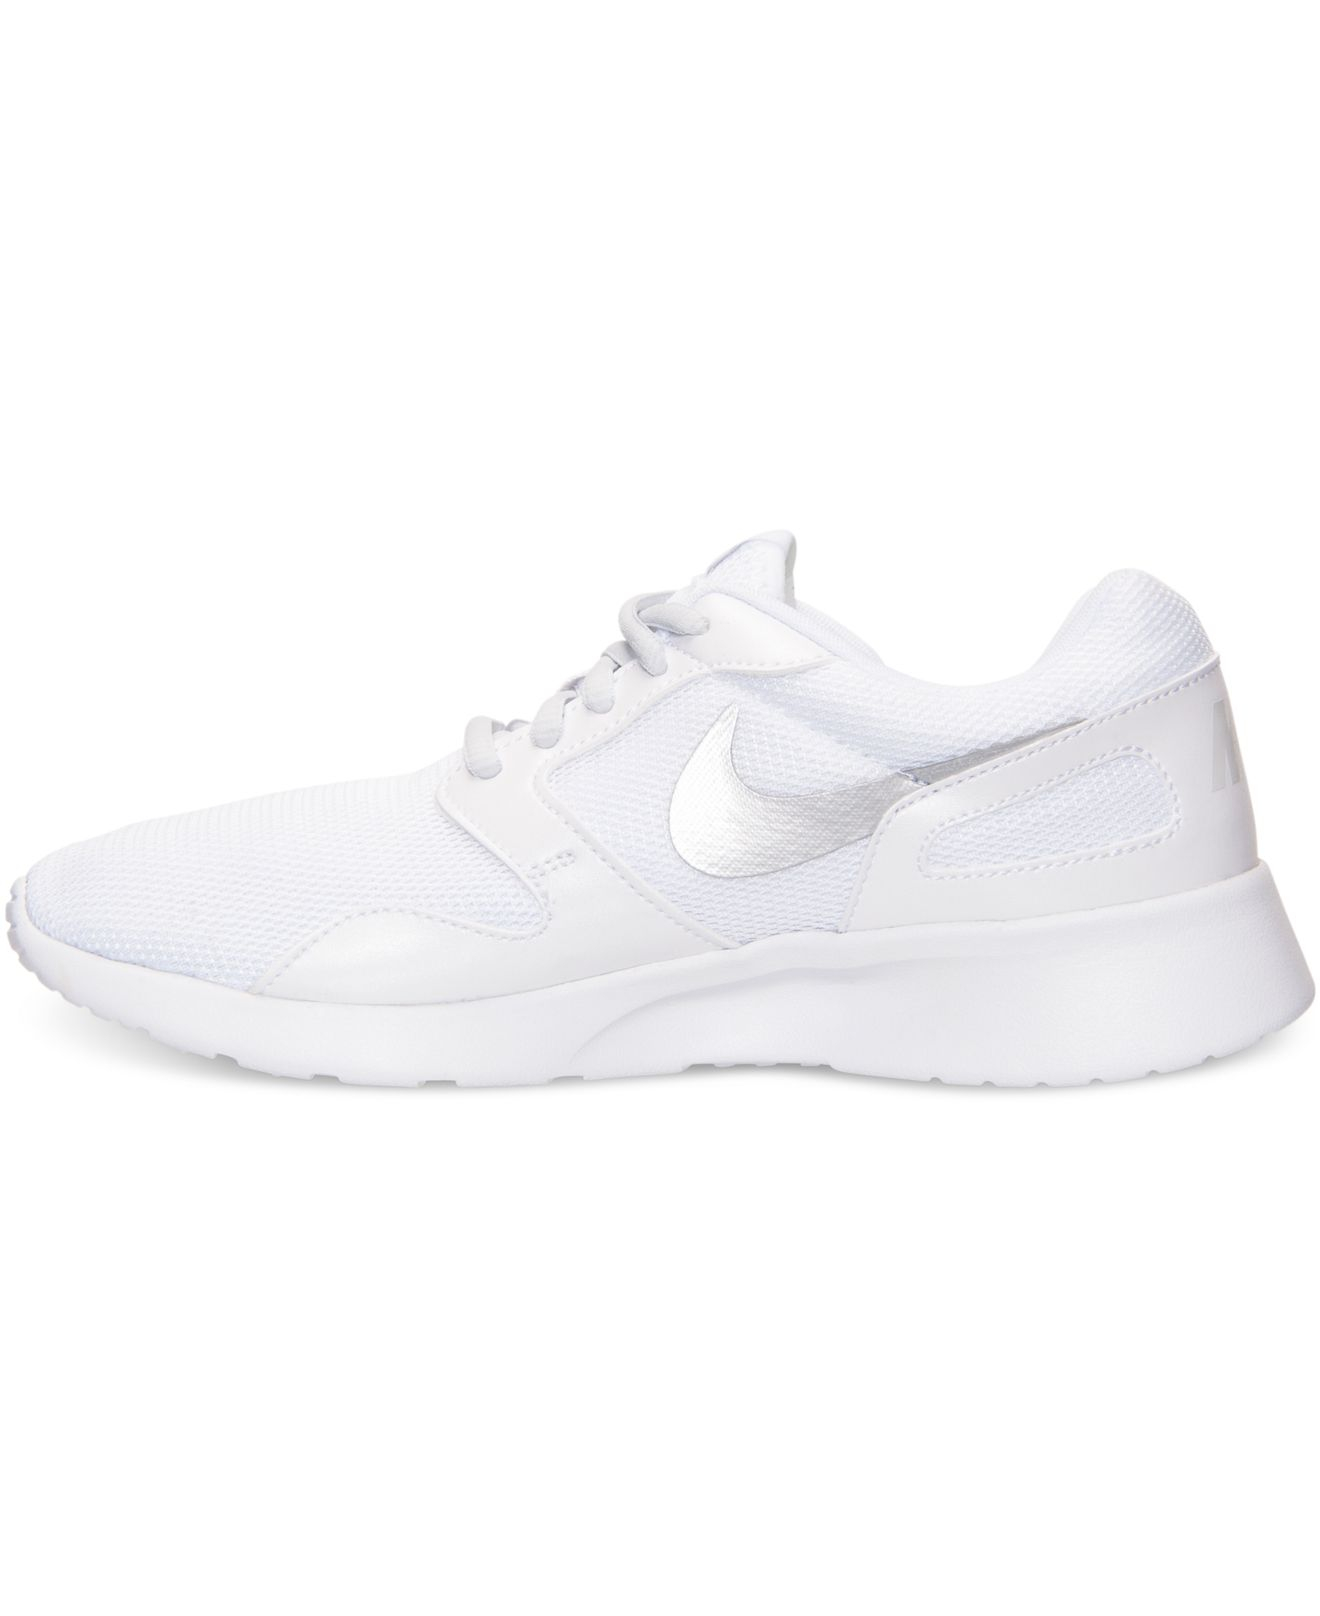 Excellent Womens Nike Aptare Casual Shoes In White Or Grey  $4498 Was $8999 At Finish Line Get Free Instore Pickup If Stock Permits, Otherwise Shipping Is A $7 Flatrate Note Sizes 6  10 Are Available In White, But Grey Only Has Size 11